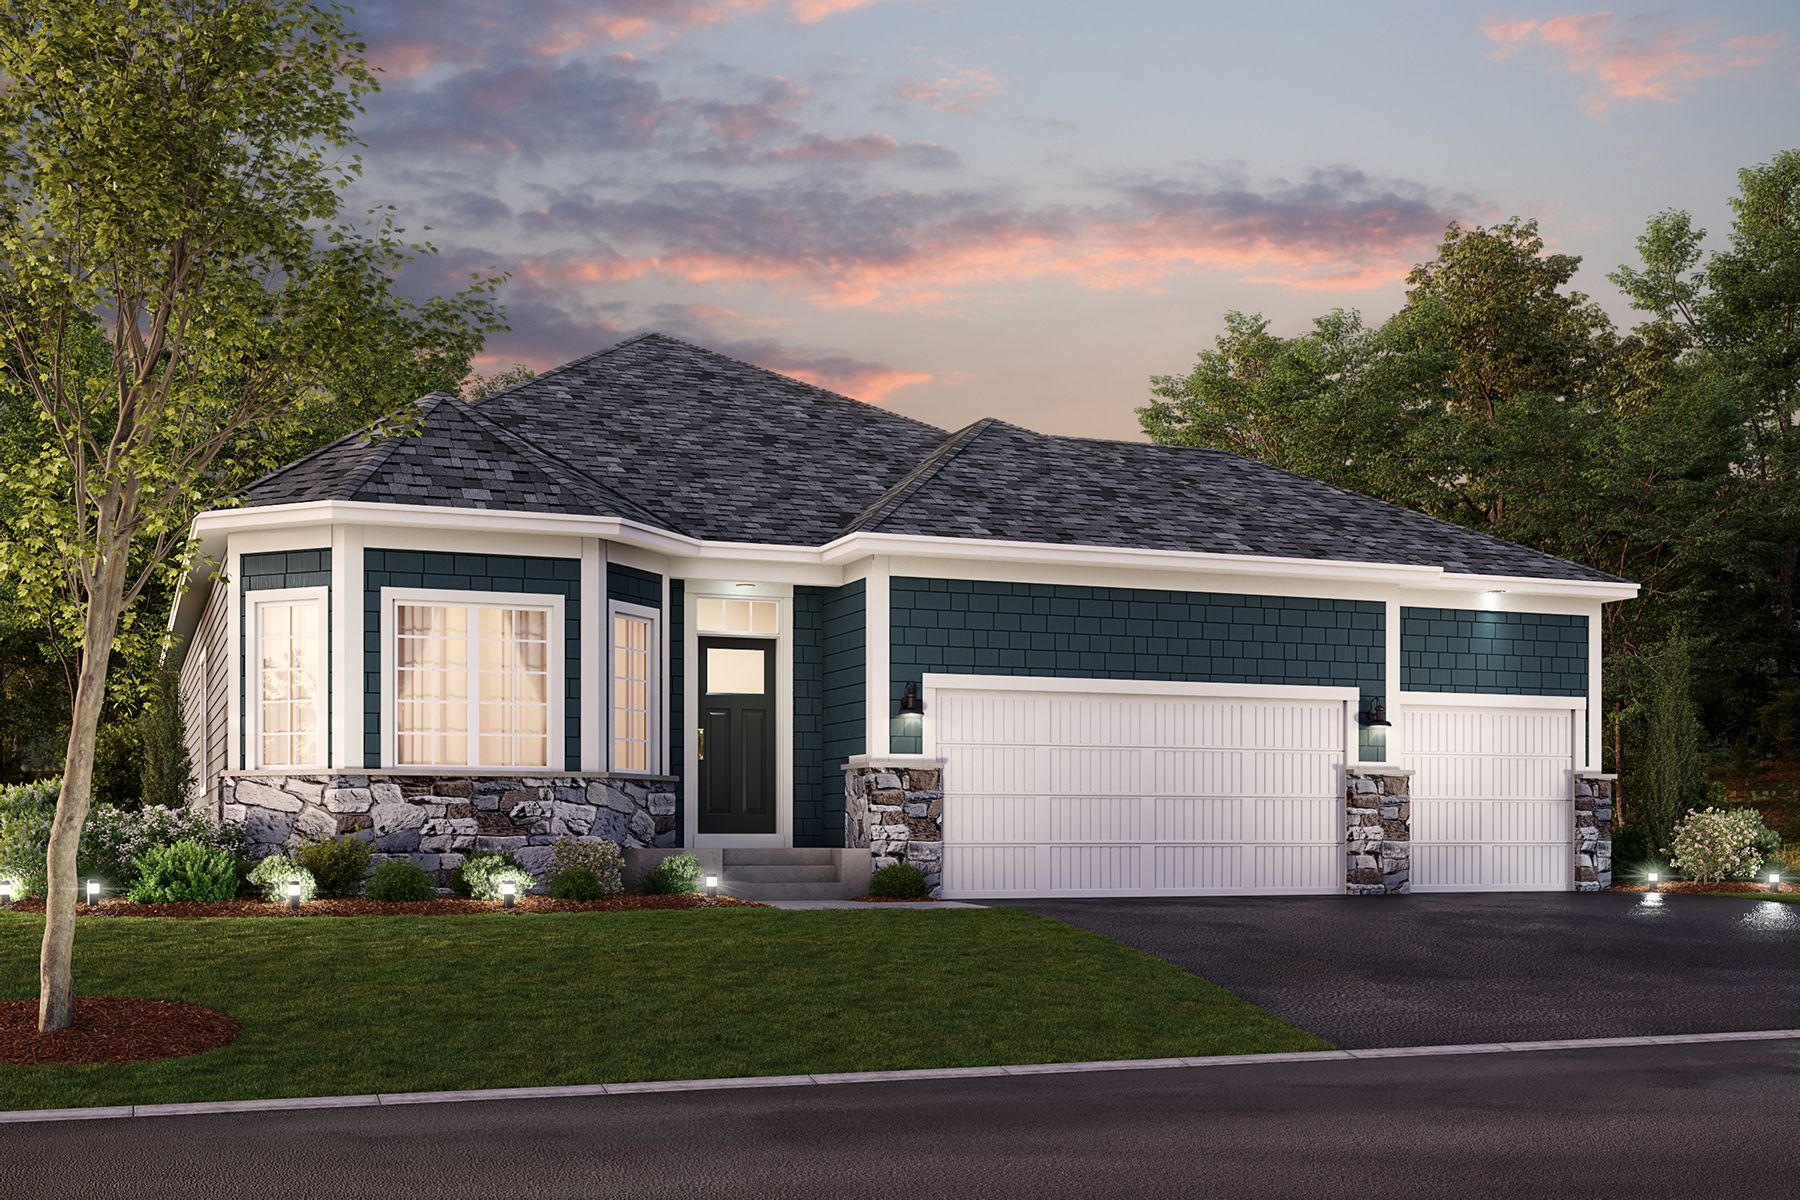 Graystone Elevation B – Stone 3-Car